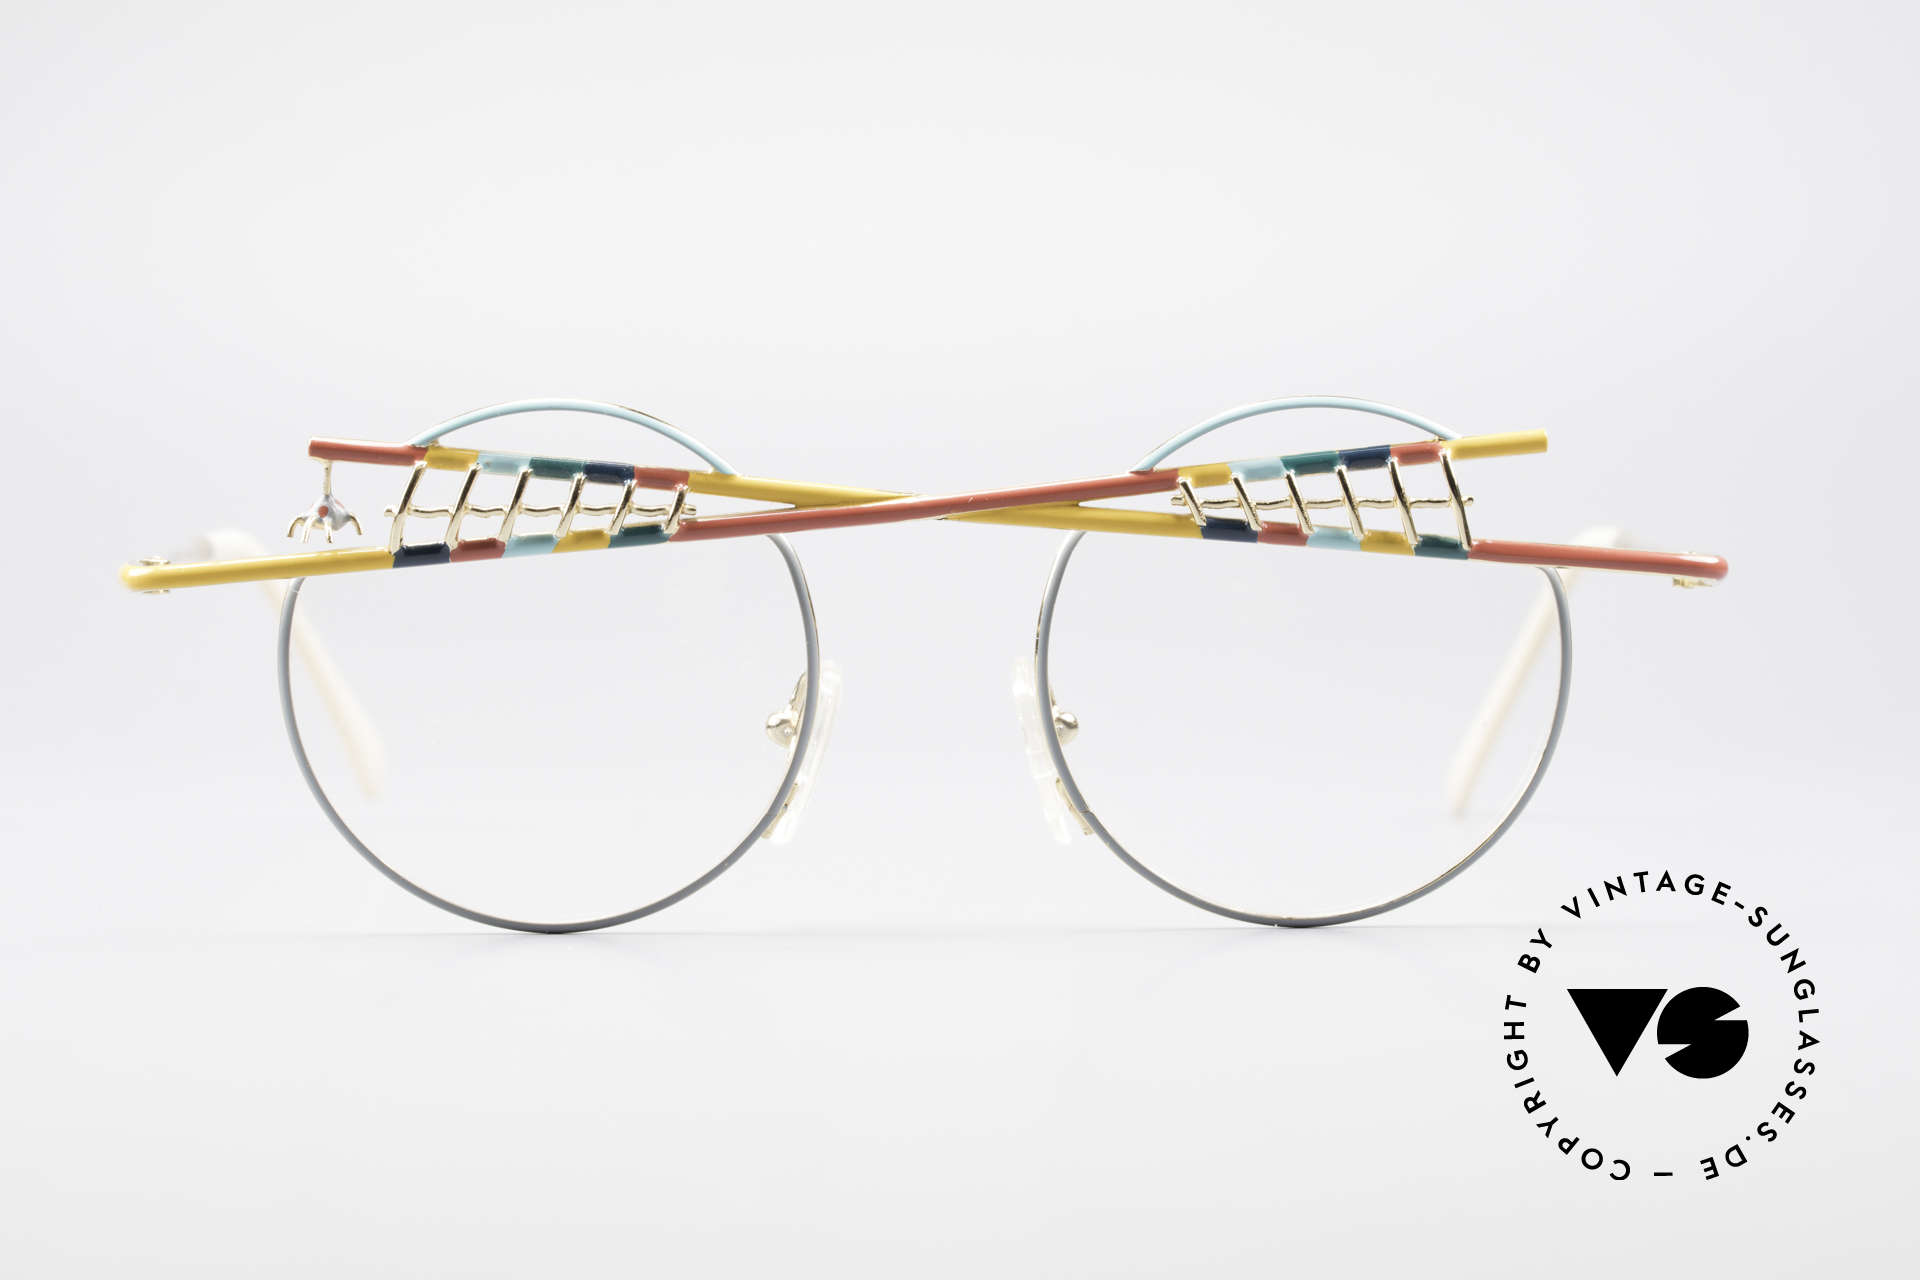 Taxi ST1 by Casanova The Jester Glasses Art Frame, distinctive Venetian design in style of the 18th century, Made for Men and Women